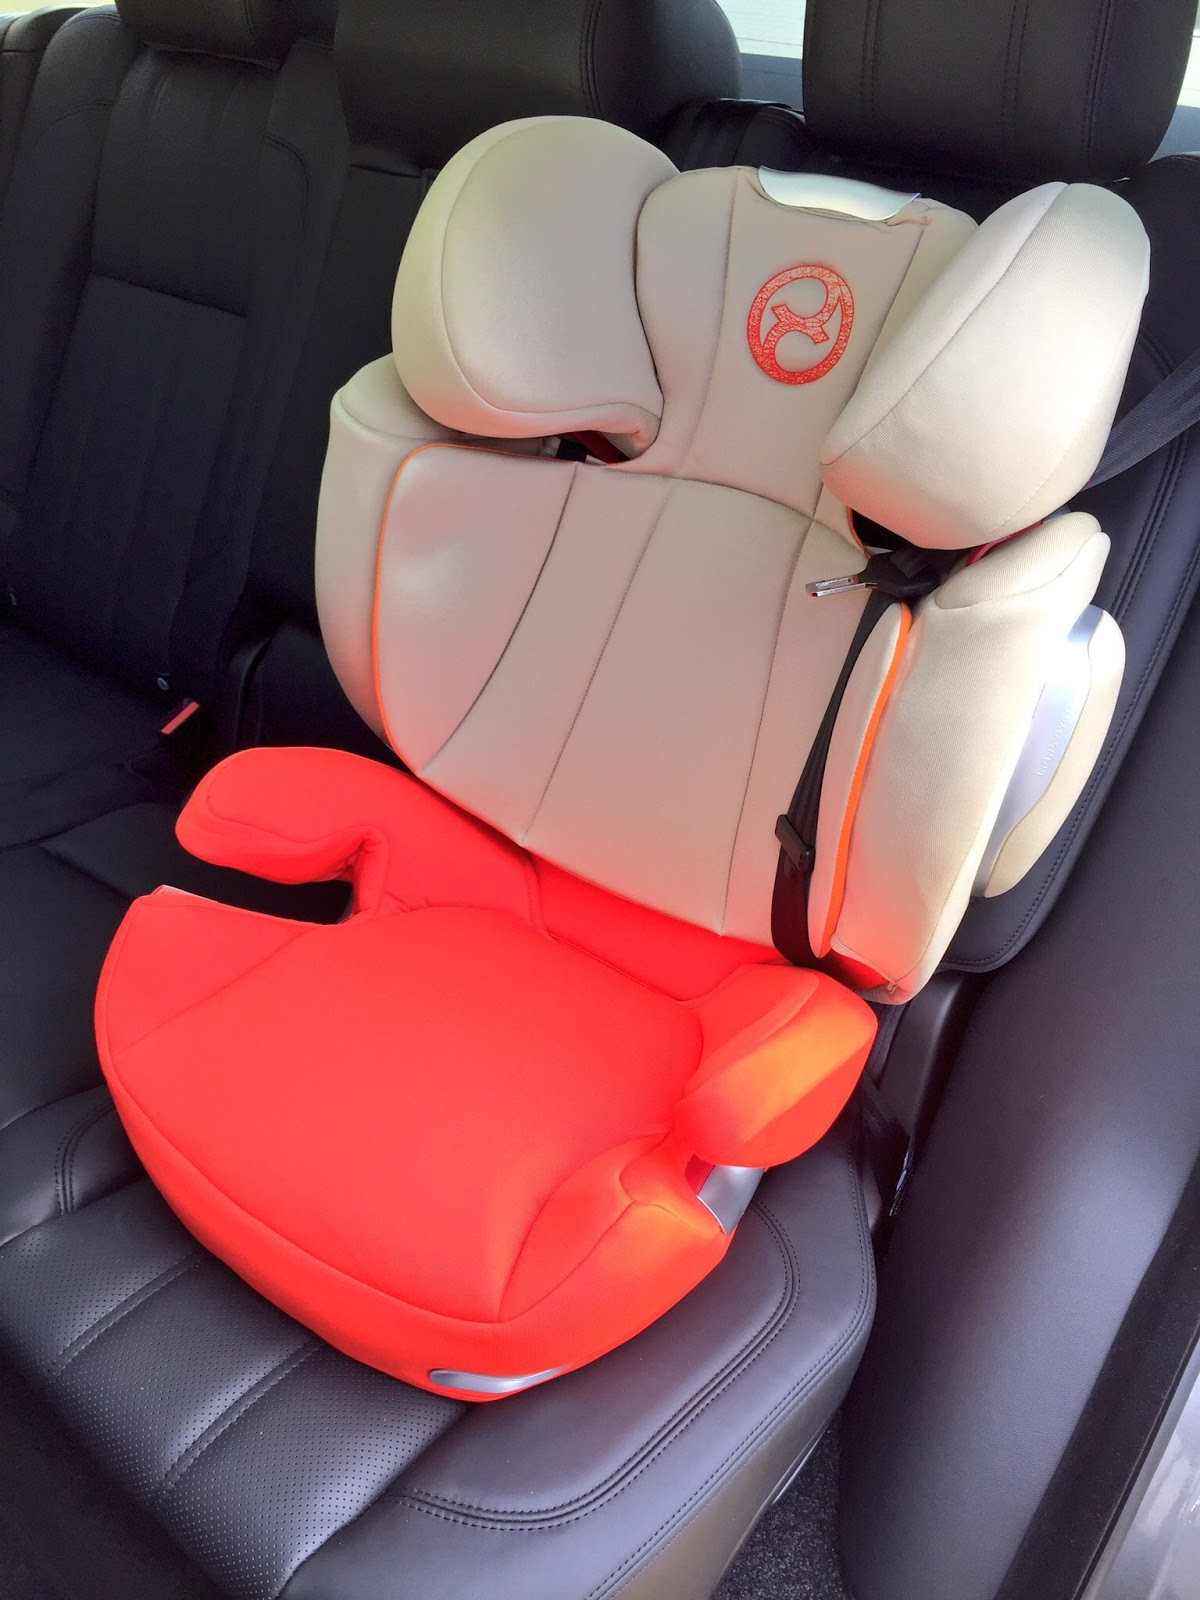 a546ae4d24e Picking the right, safe, comfy, easy to use, affordable child seat for your  precious cargo can be an arduous process when you first start parenthood  and ...